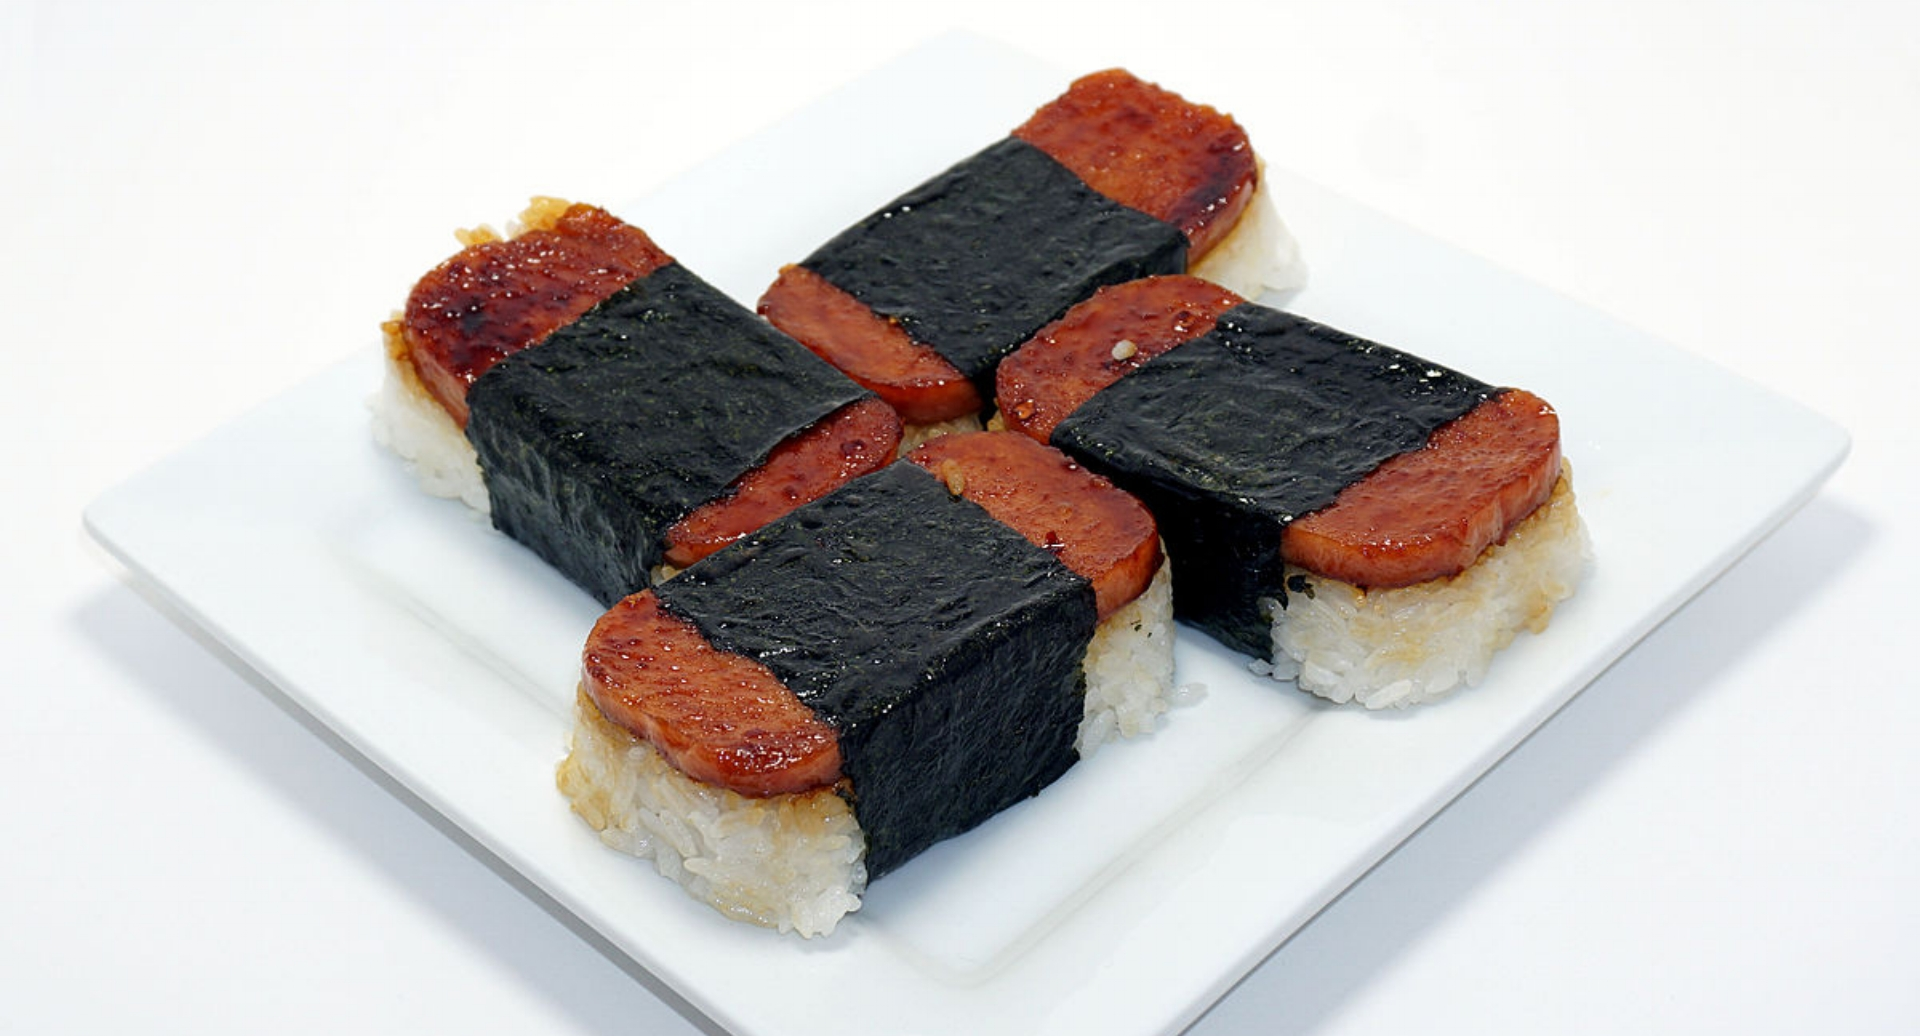 SPAM MUSUBI   a popular snack and lunch food in Hawaii composed of a slice of grilled Spam on top of a block of rice, wrapped together with nori in the tradition of Japanese  omusubi